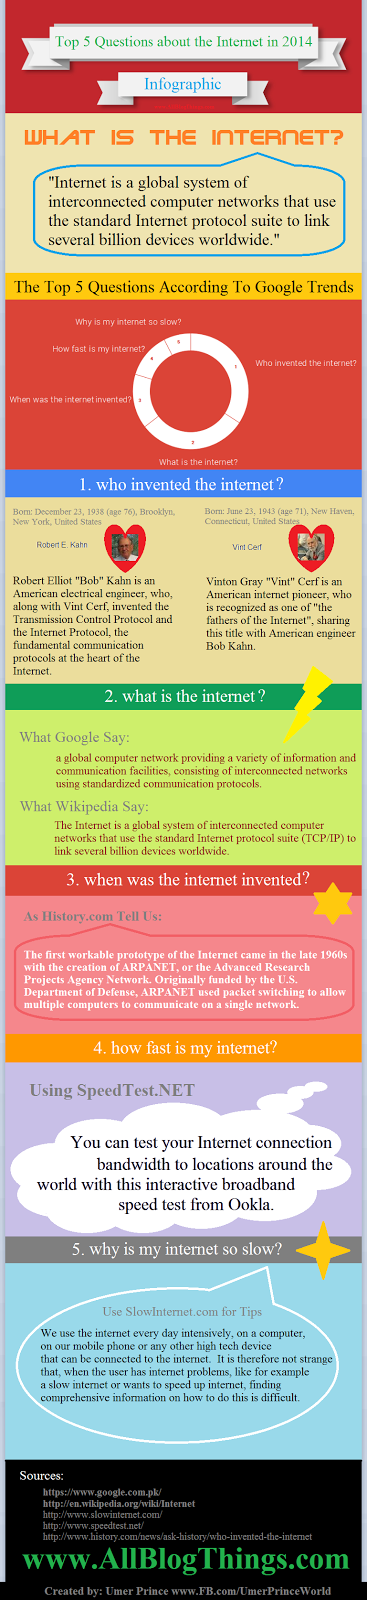 Top 5 Questions about the Internet in 2014 - #Infographic